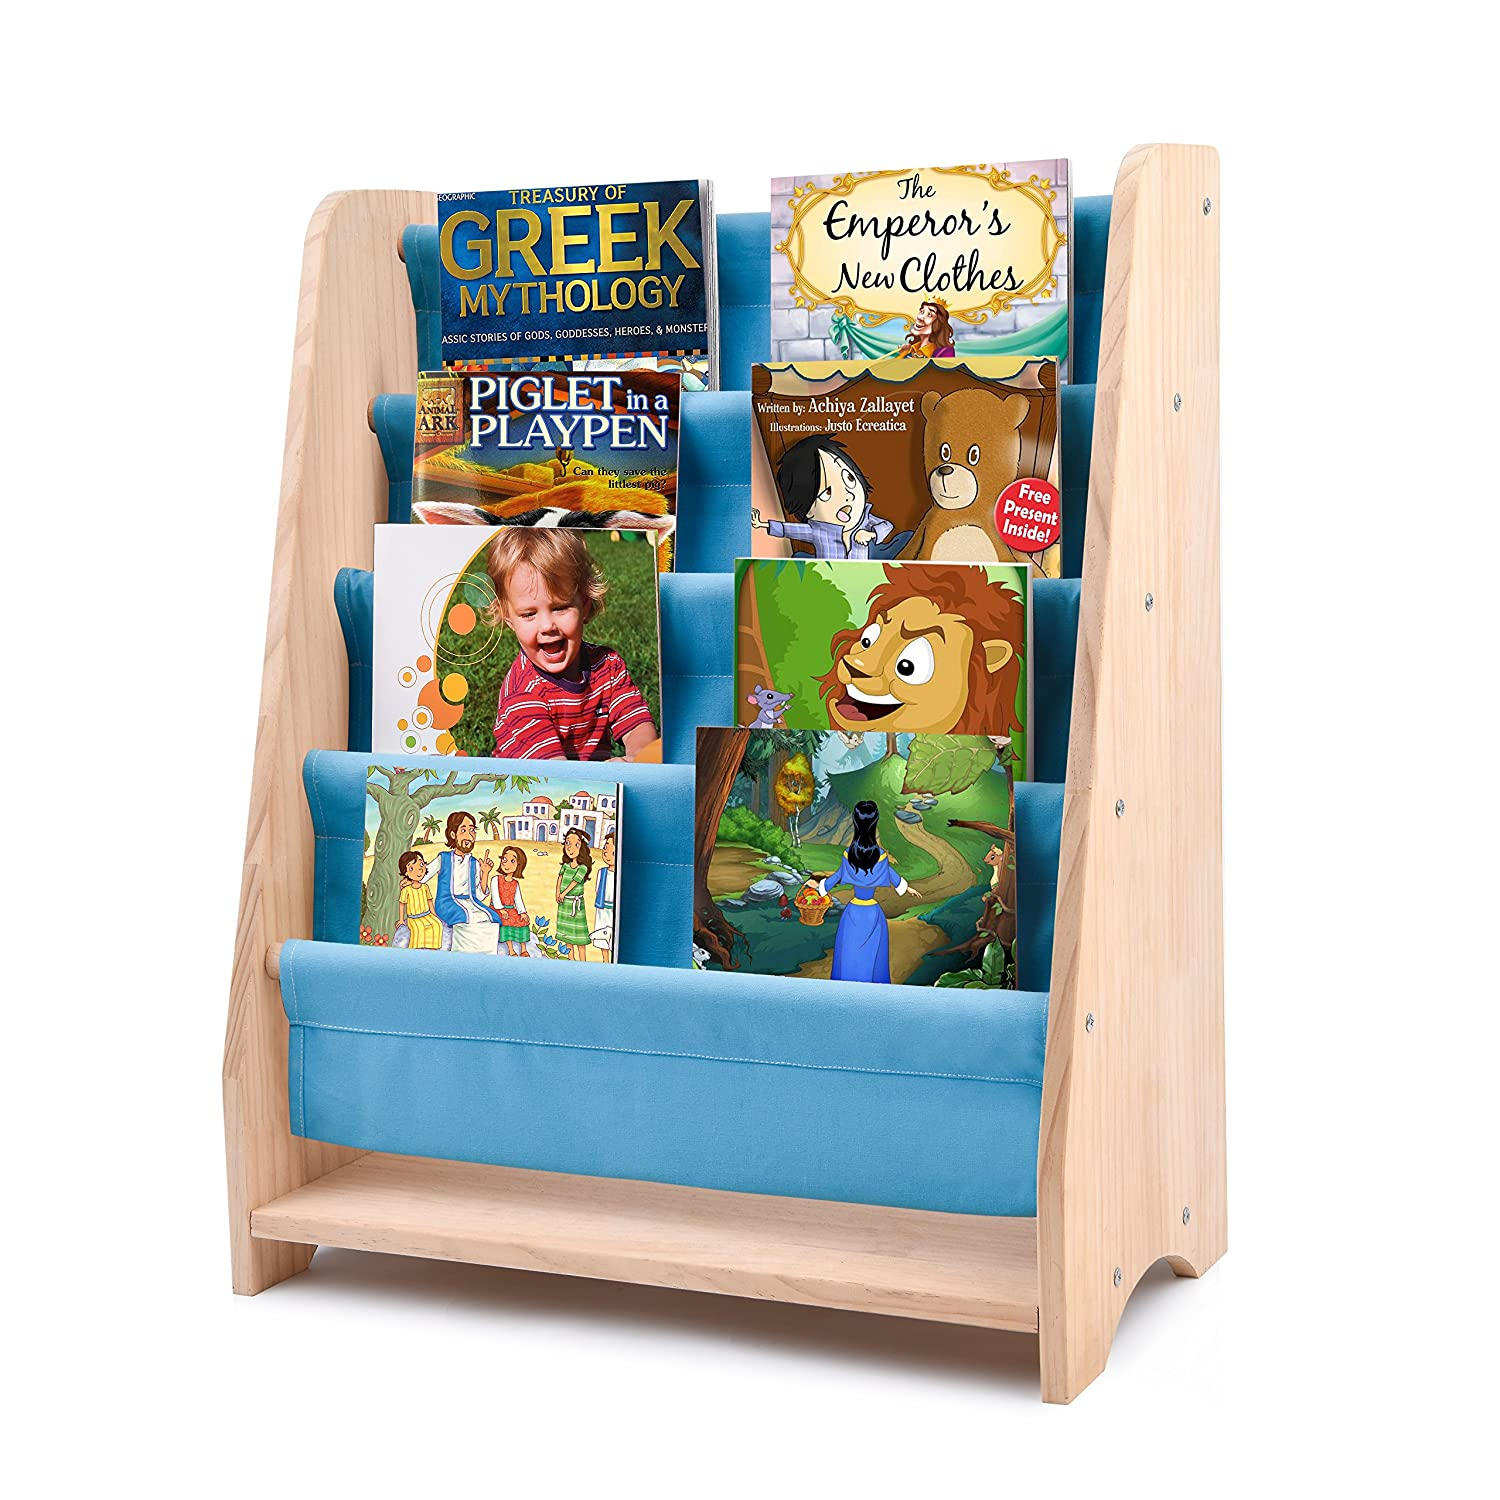 Kids Sling Bookcase Safe Care Childrens Wooden Rack Storage Bookshelf Features Suitable Height For Toddler With